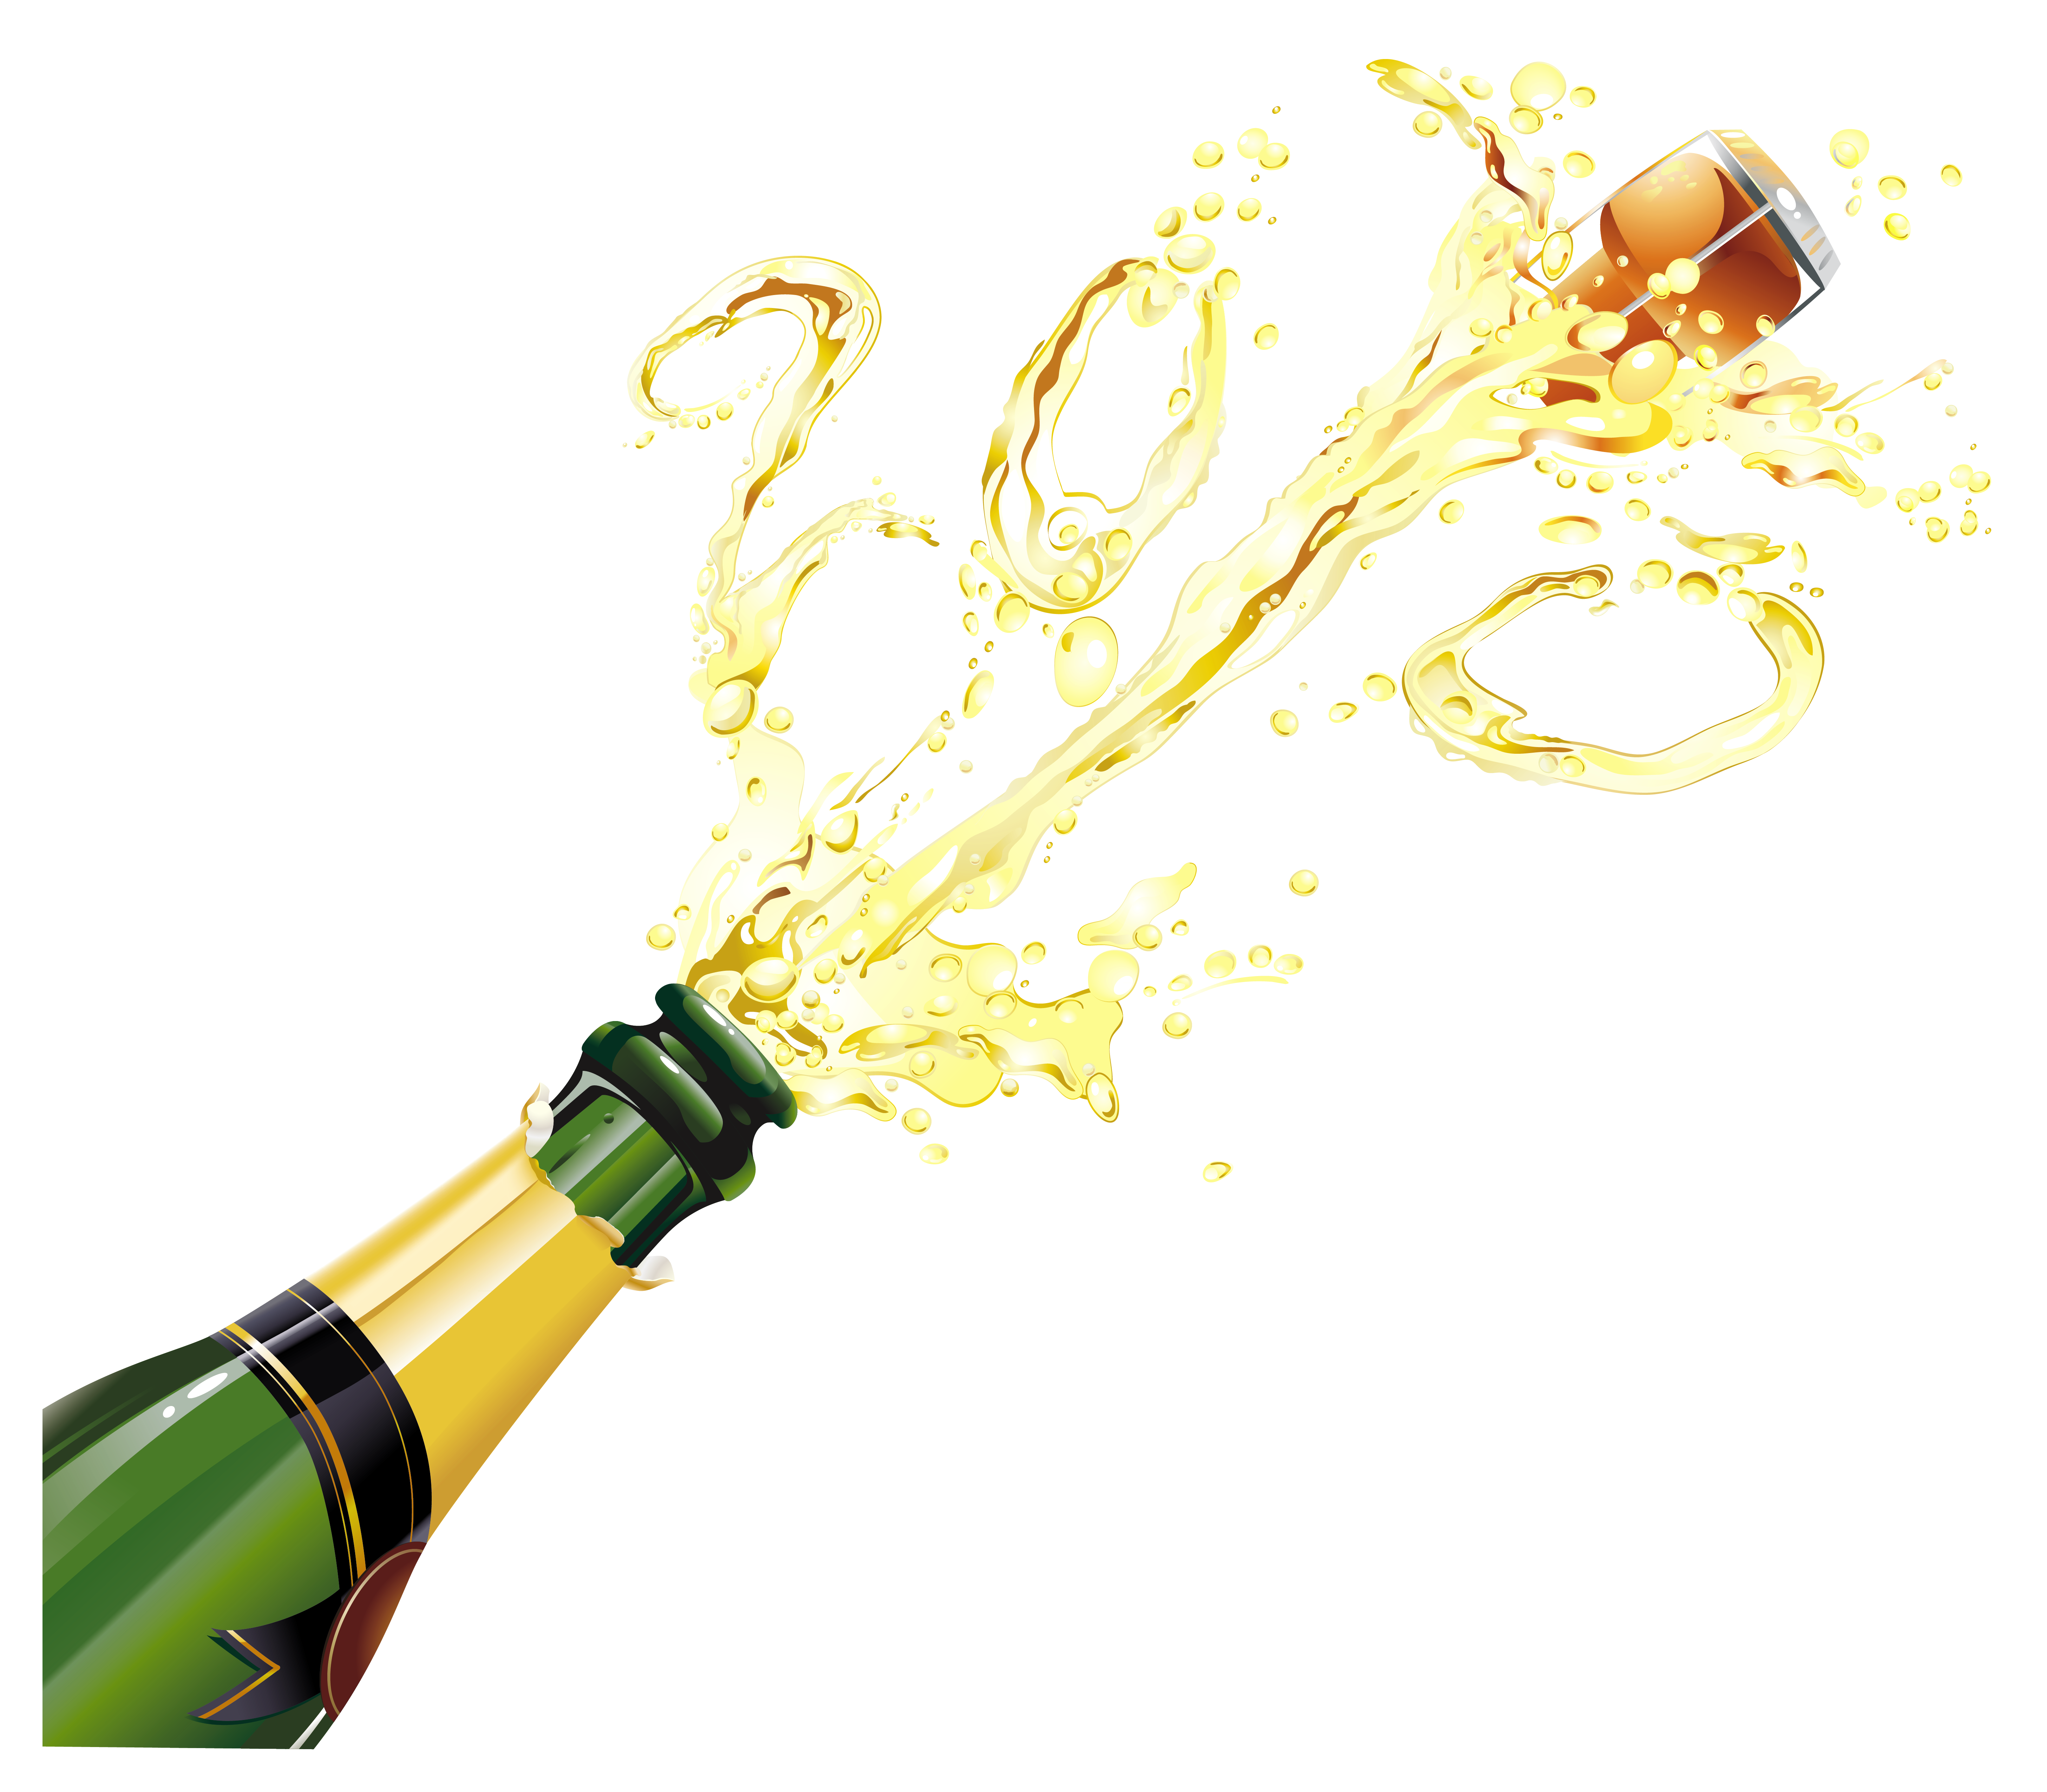 New year champagne png. Champaign clipart transparent background